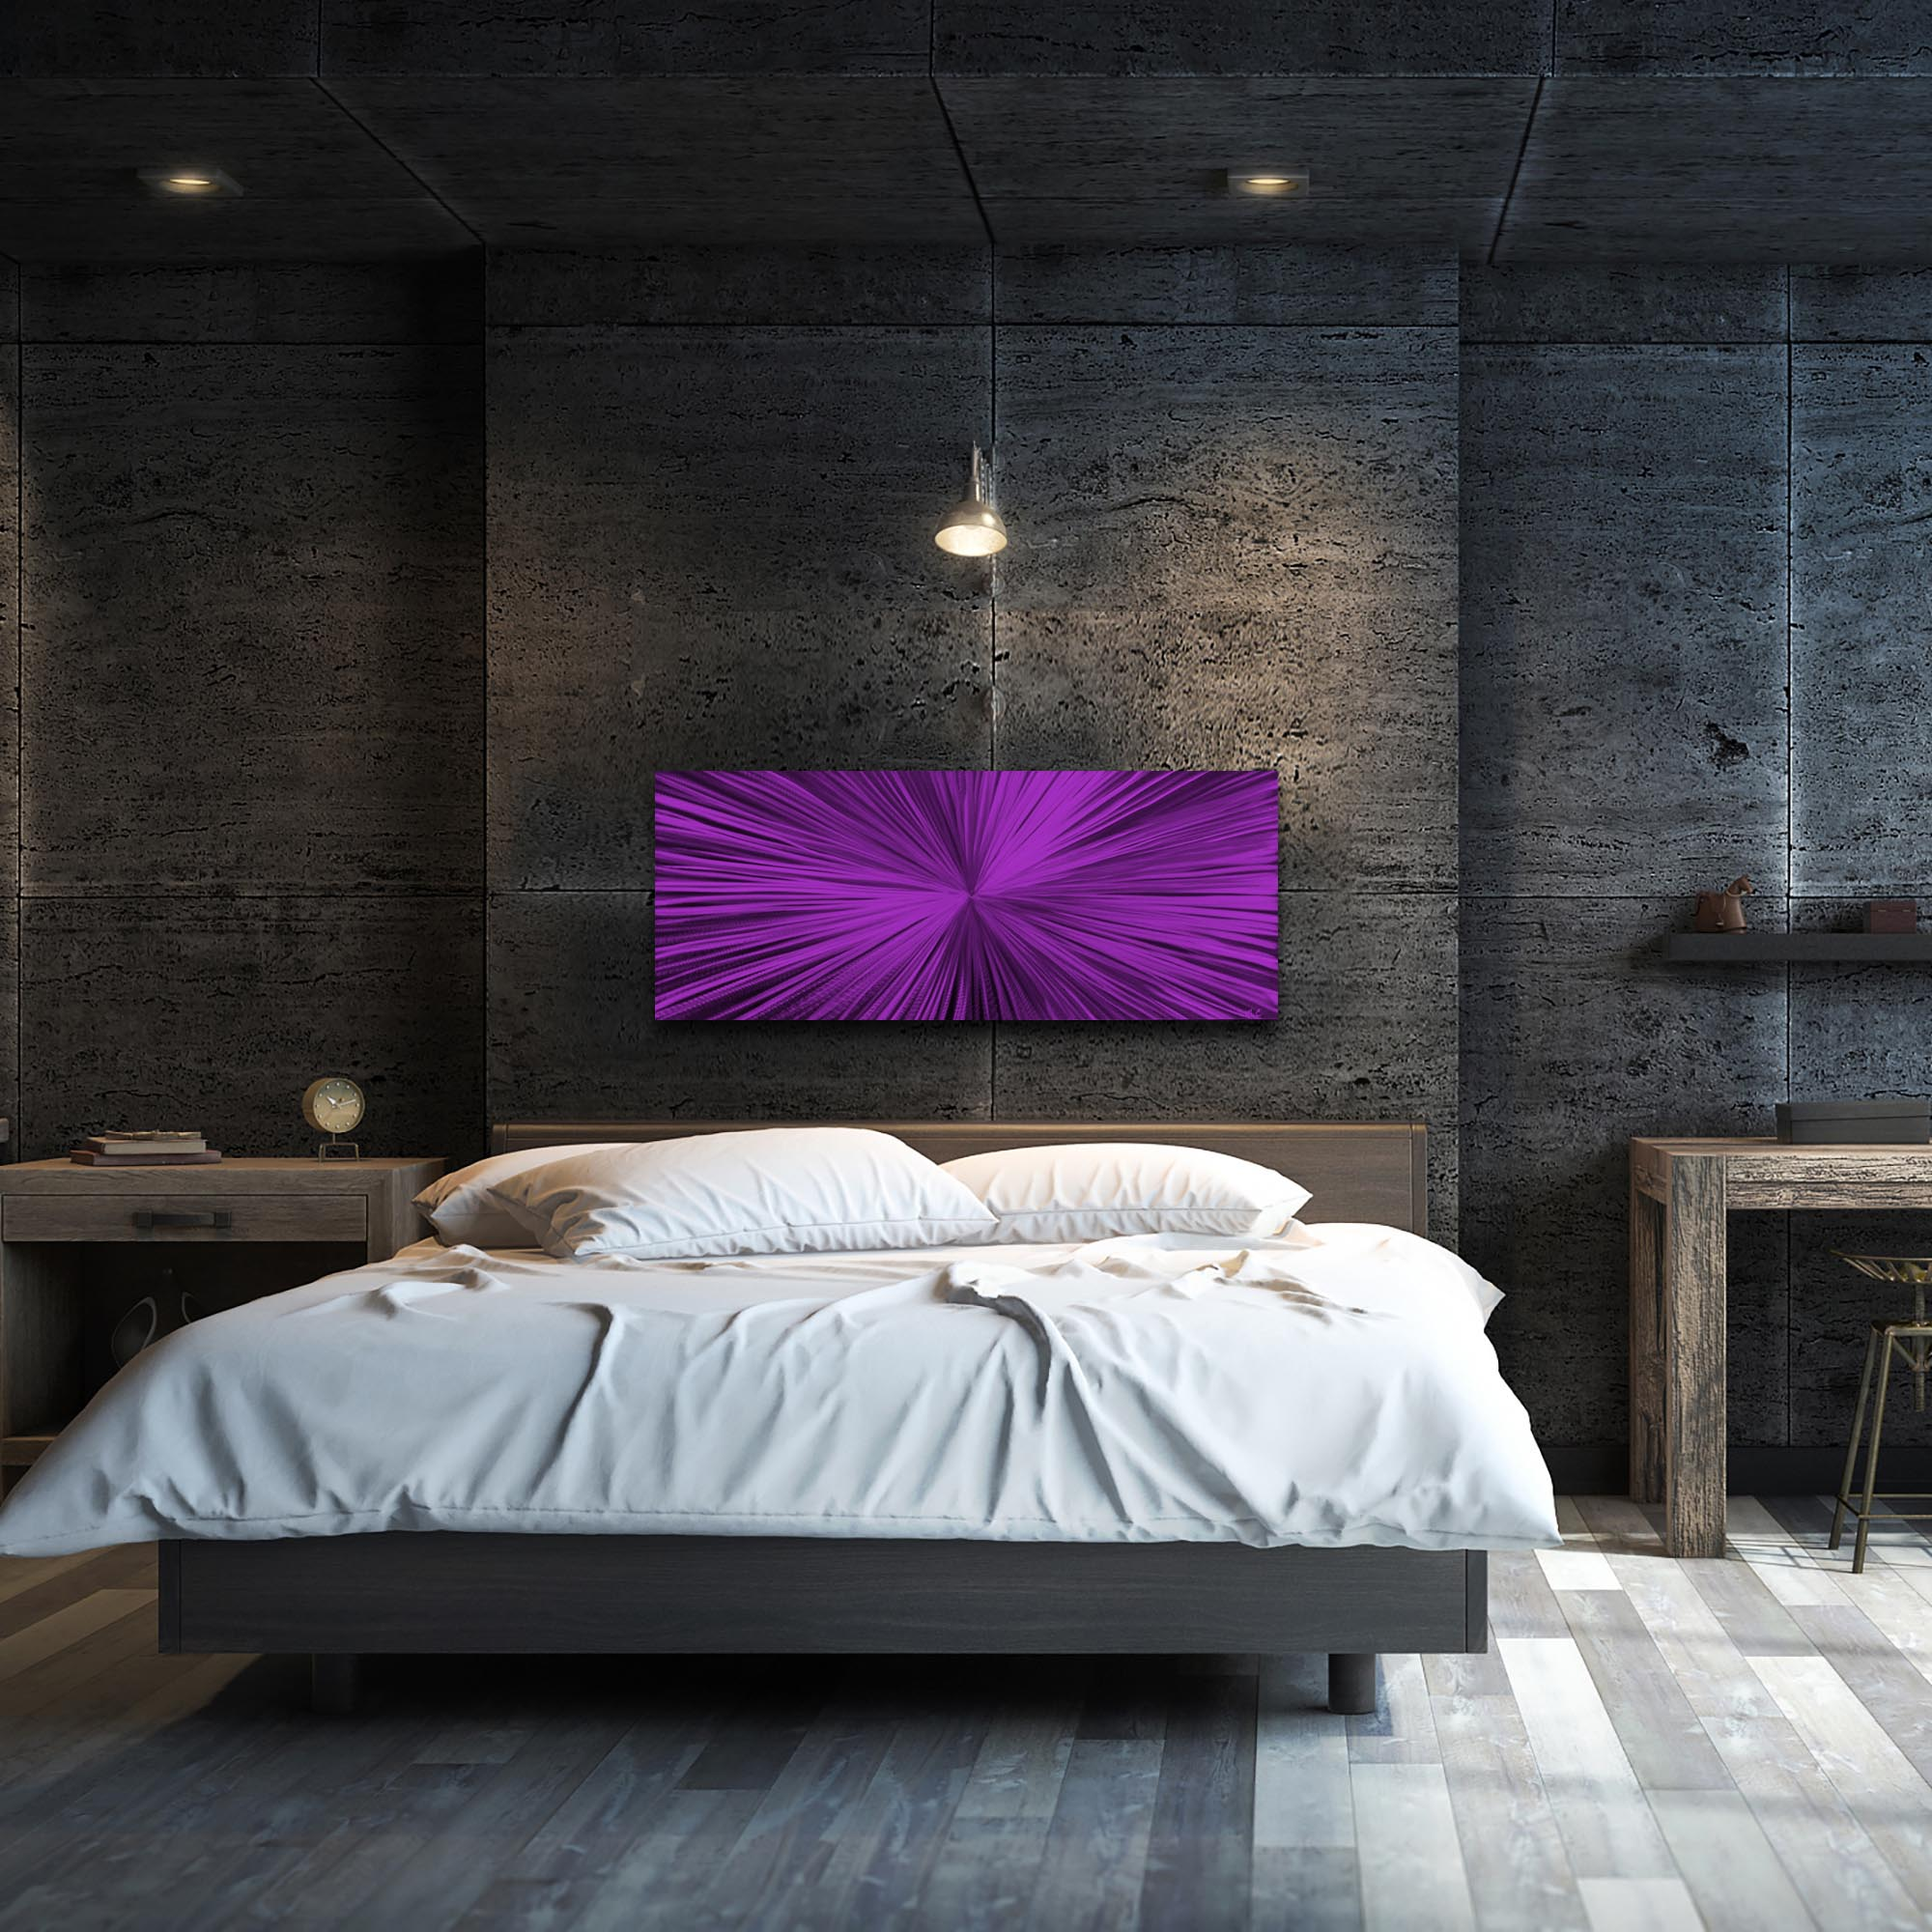 Starburst Purple by Helena Martin - Original Abstract Art on Ground and Painted Metal - Image 2